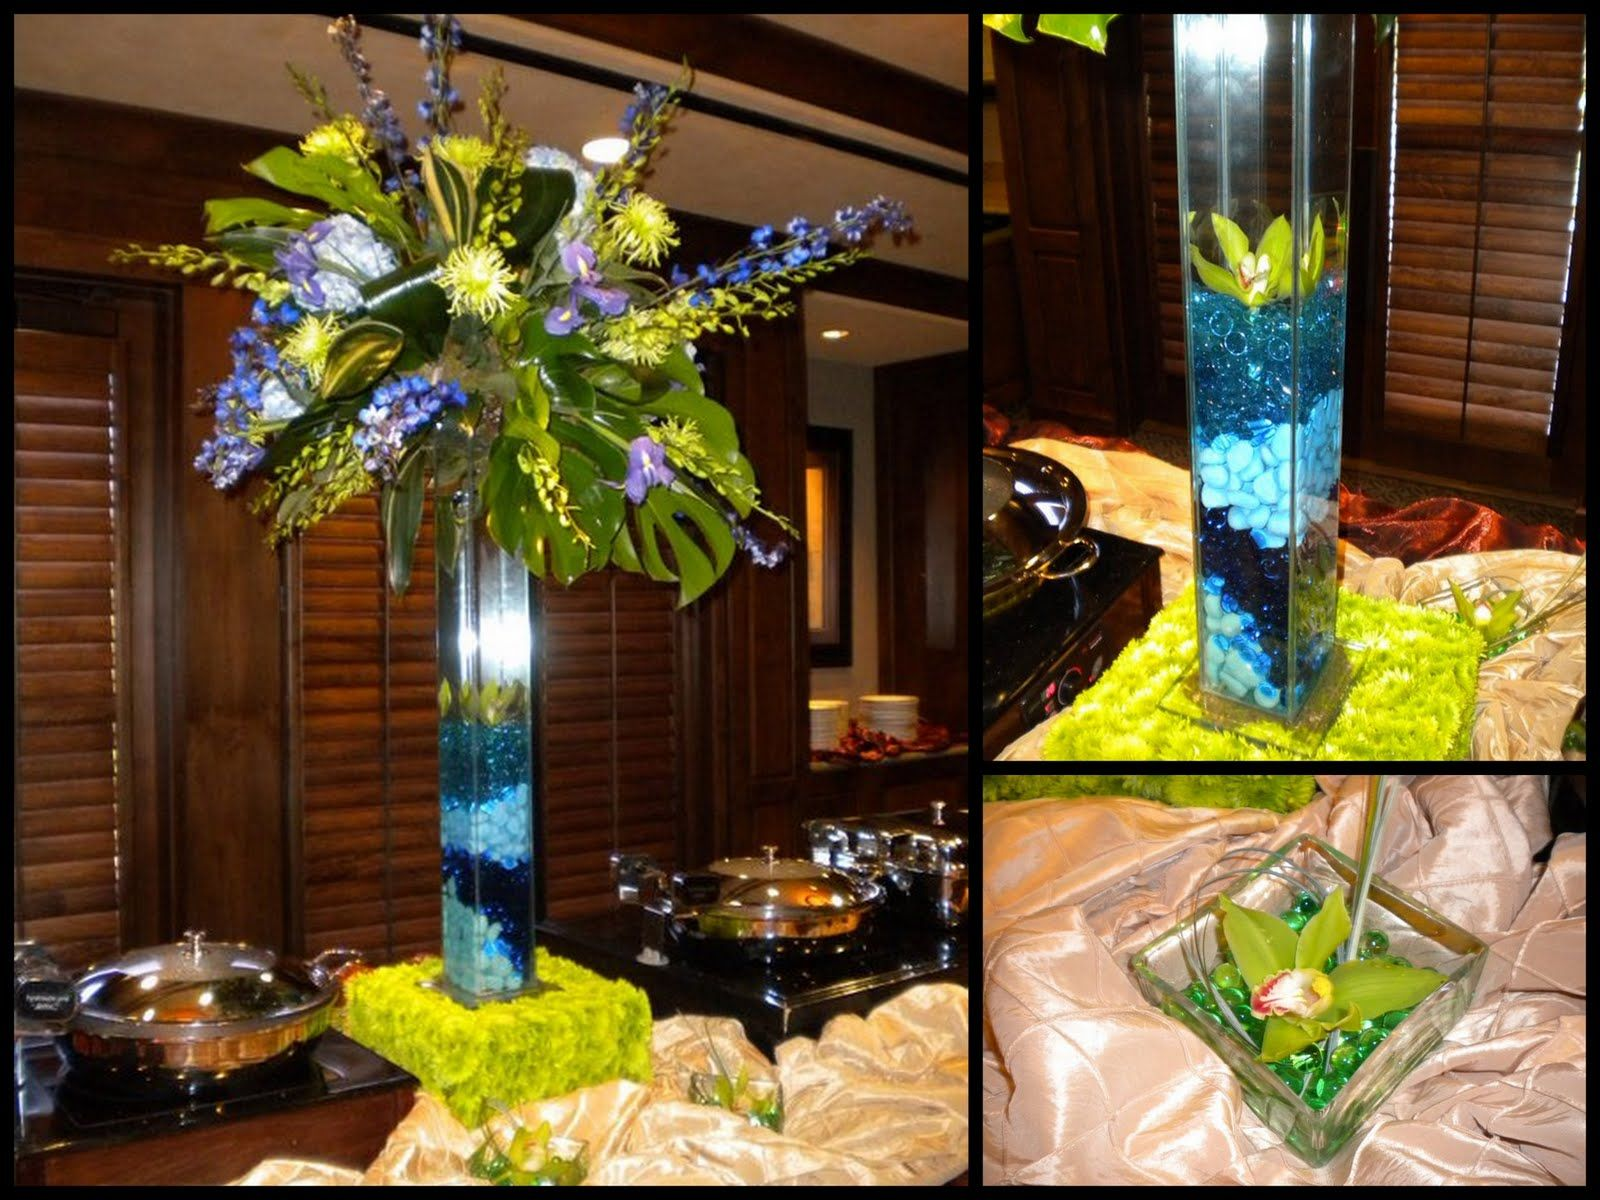 Photos Of Large Floral Centerpiece For Buffet Table - We